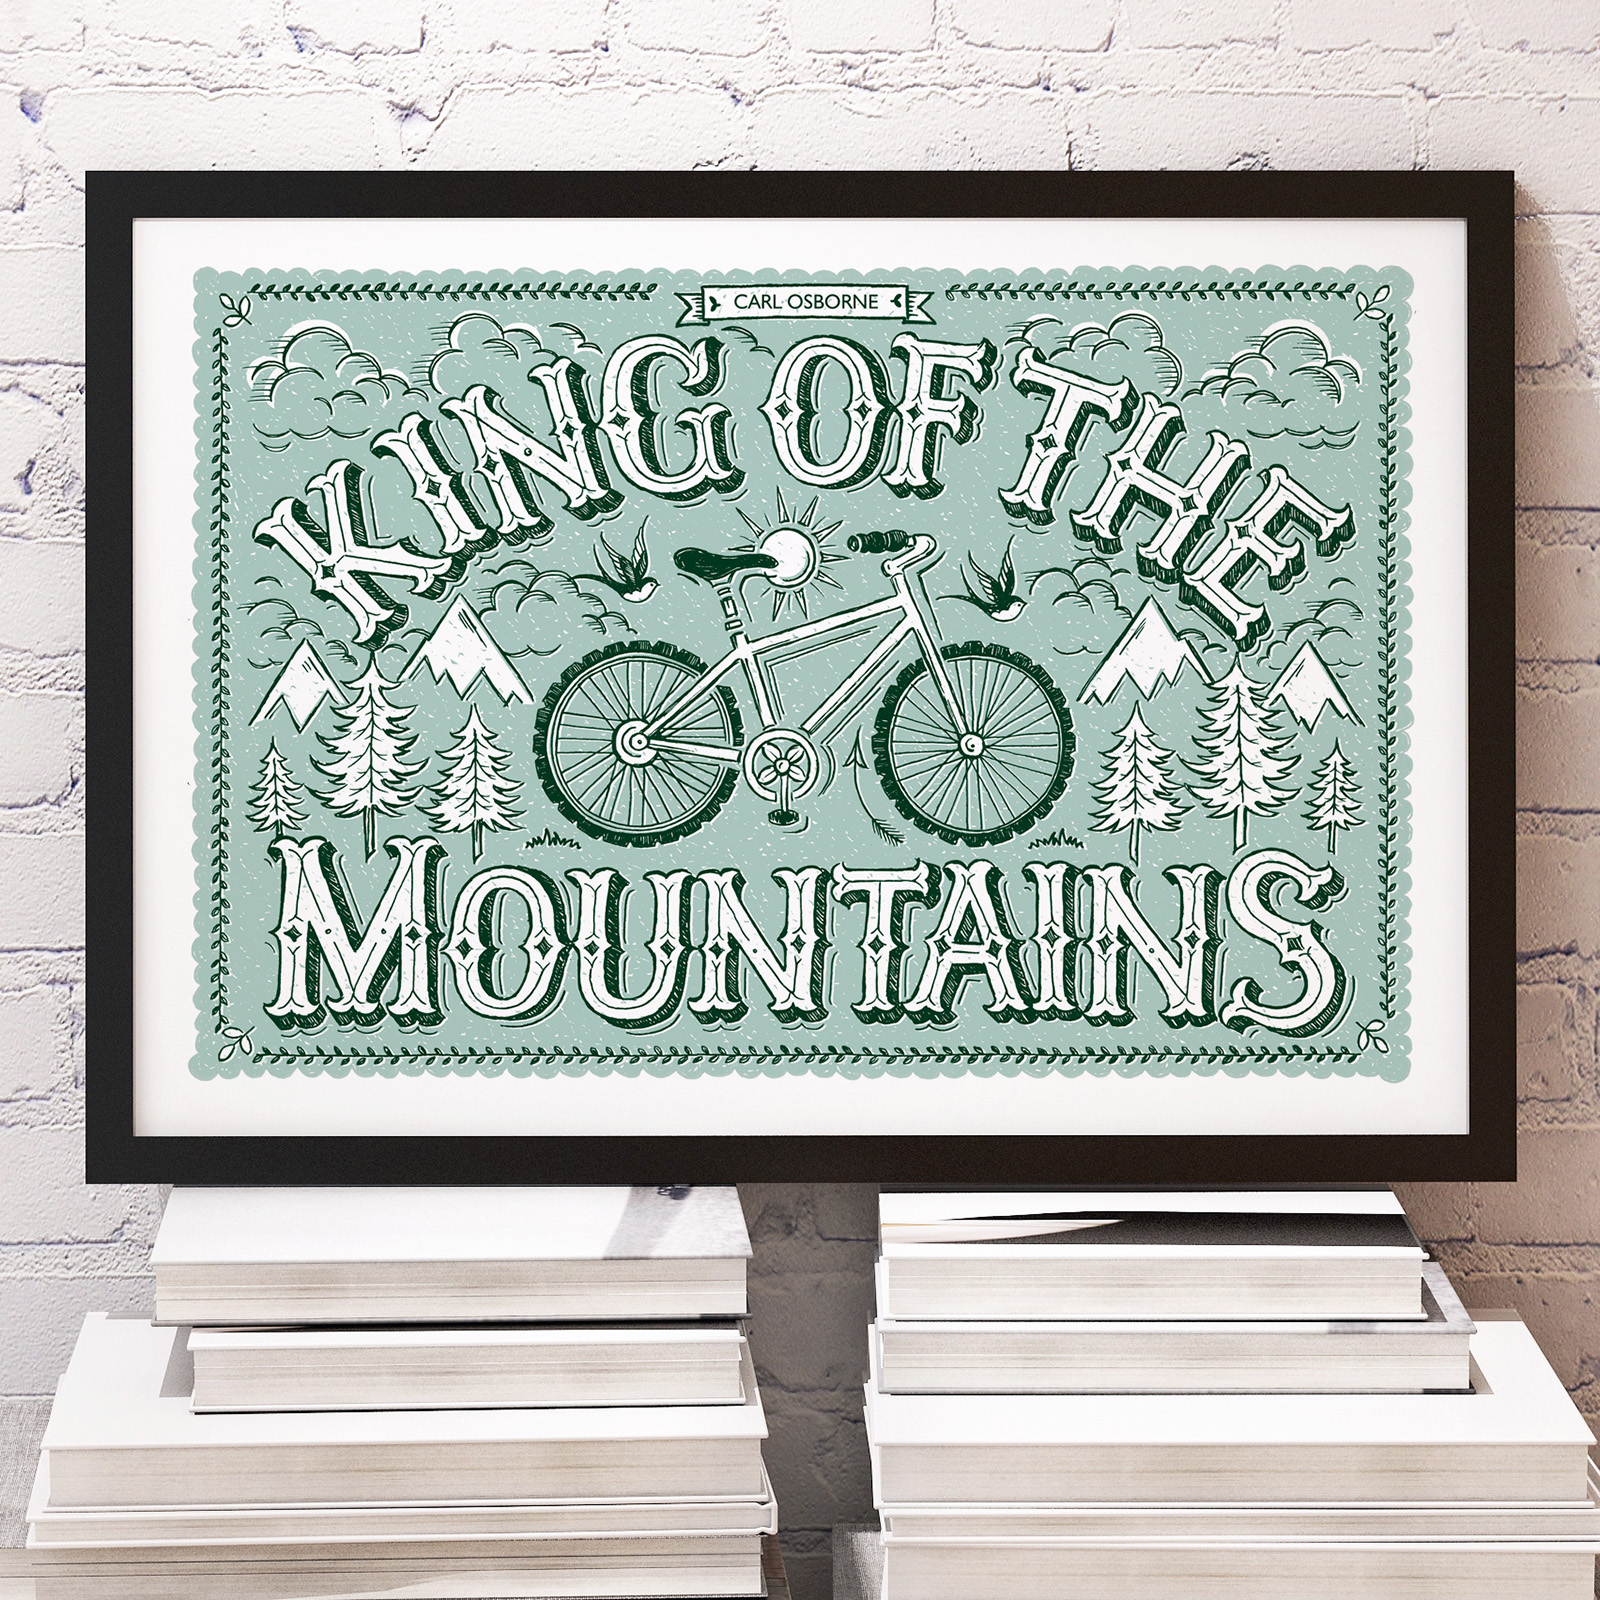 king.of.mountains.framed.personalised